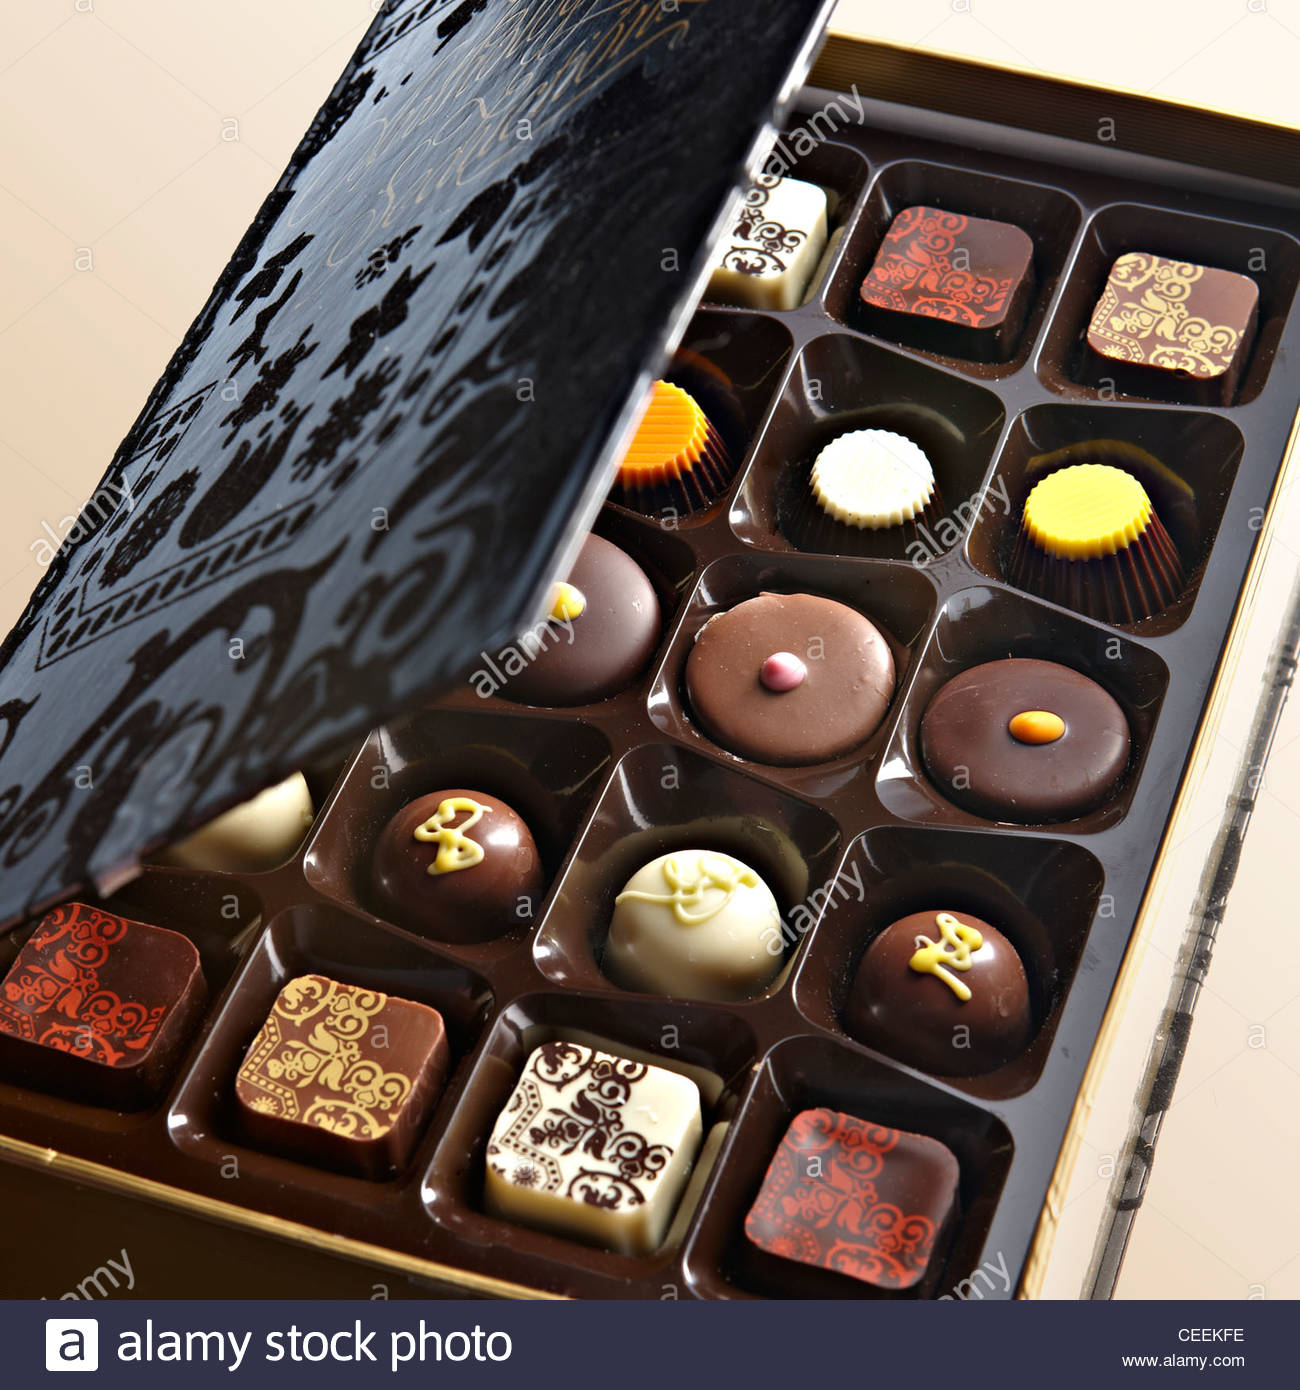 Box Of Chocolates Stock Photos & Box Of Chocolates Stock Images ...